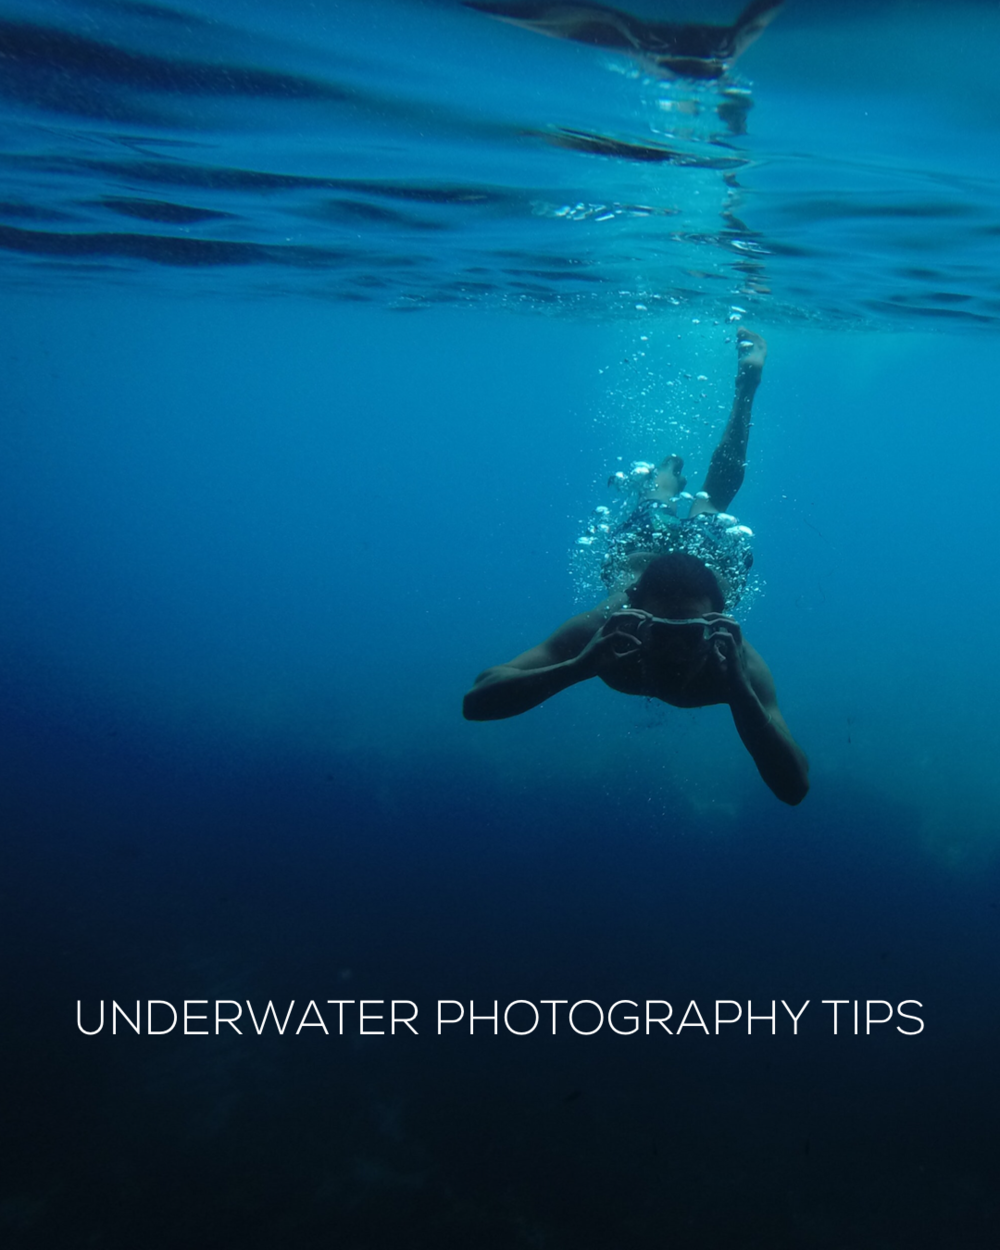 Underwater photography advice for iPhone. Image by Adrien RF